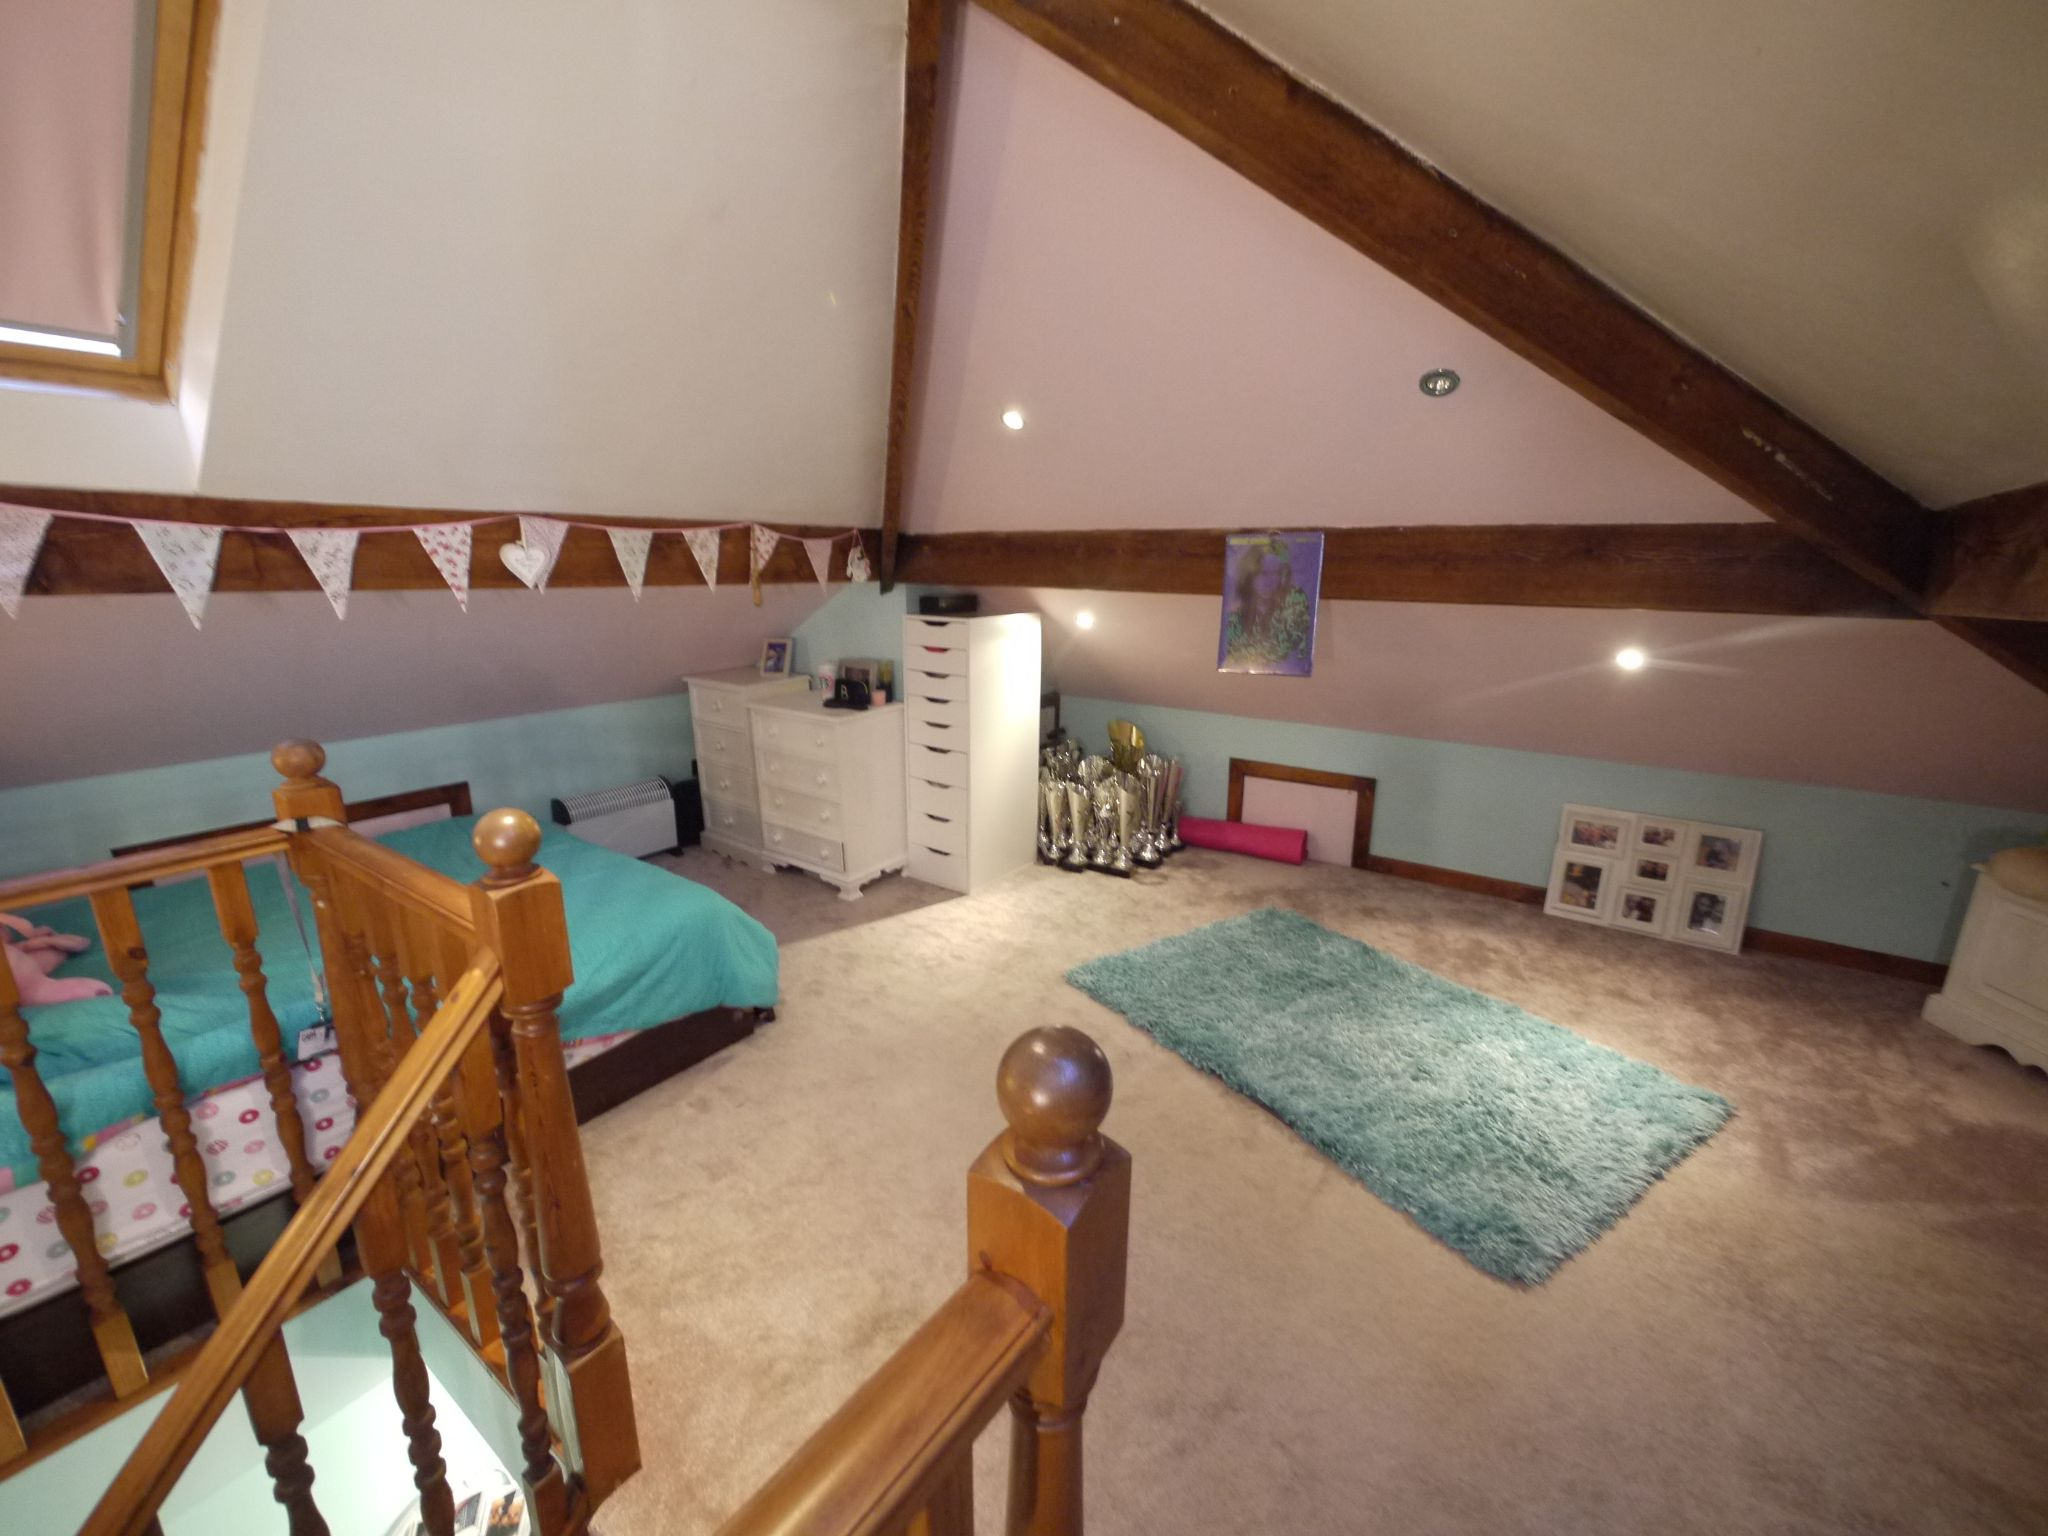 4 bedroom semi-detached house SSTC in Brighouse - Photograph 5.